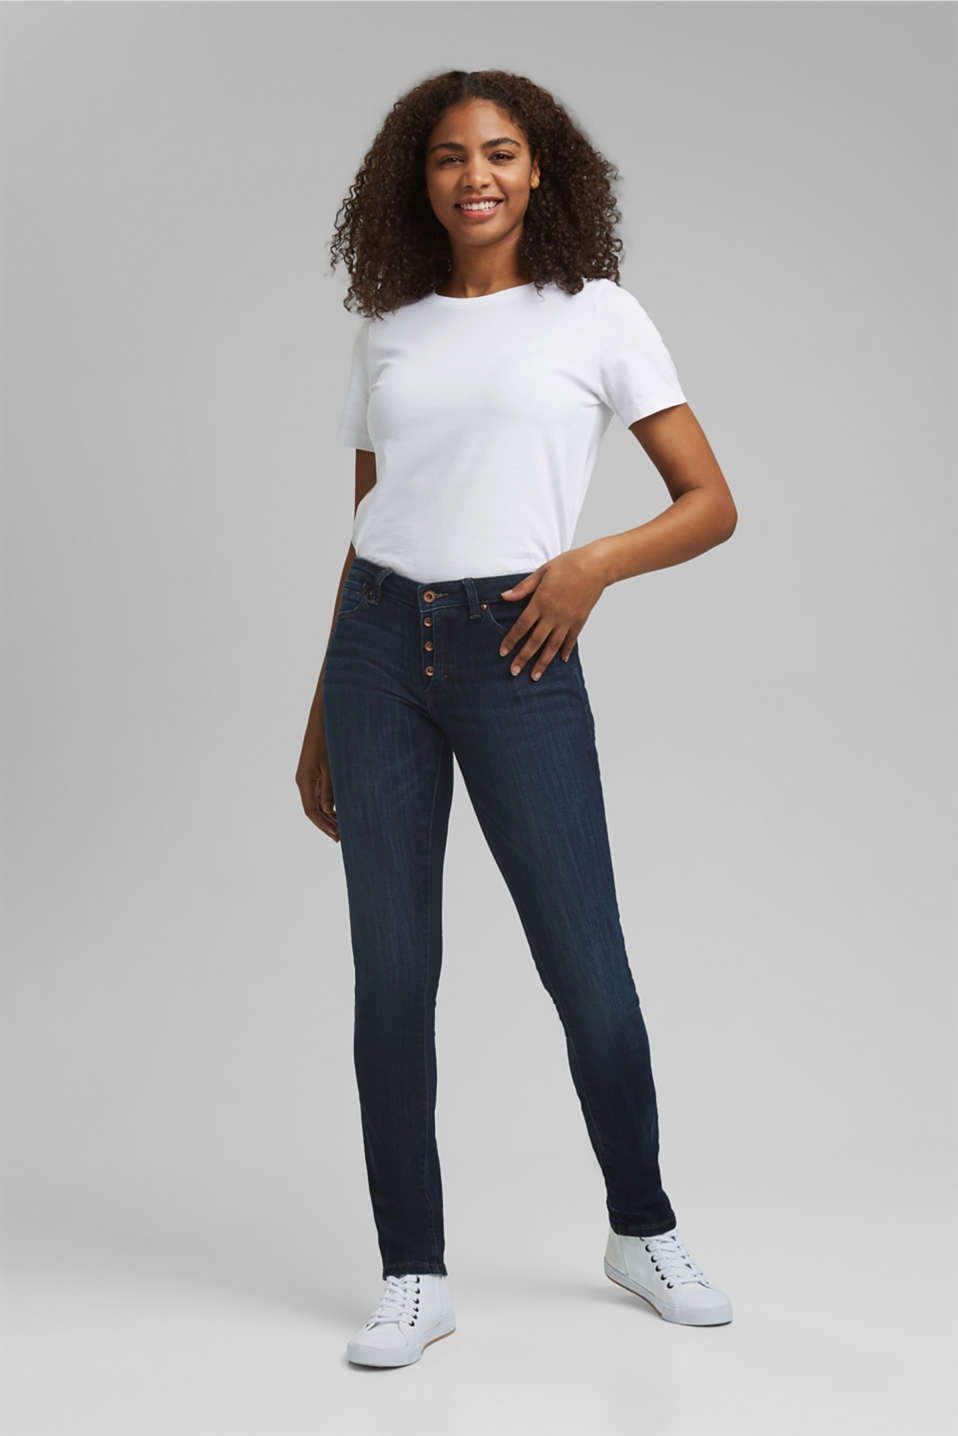 Stretch jeans with a button fly and organic cotton